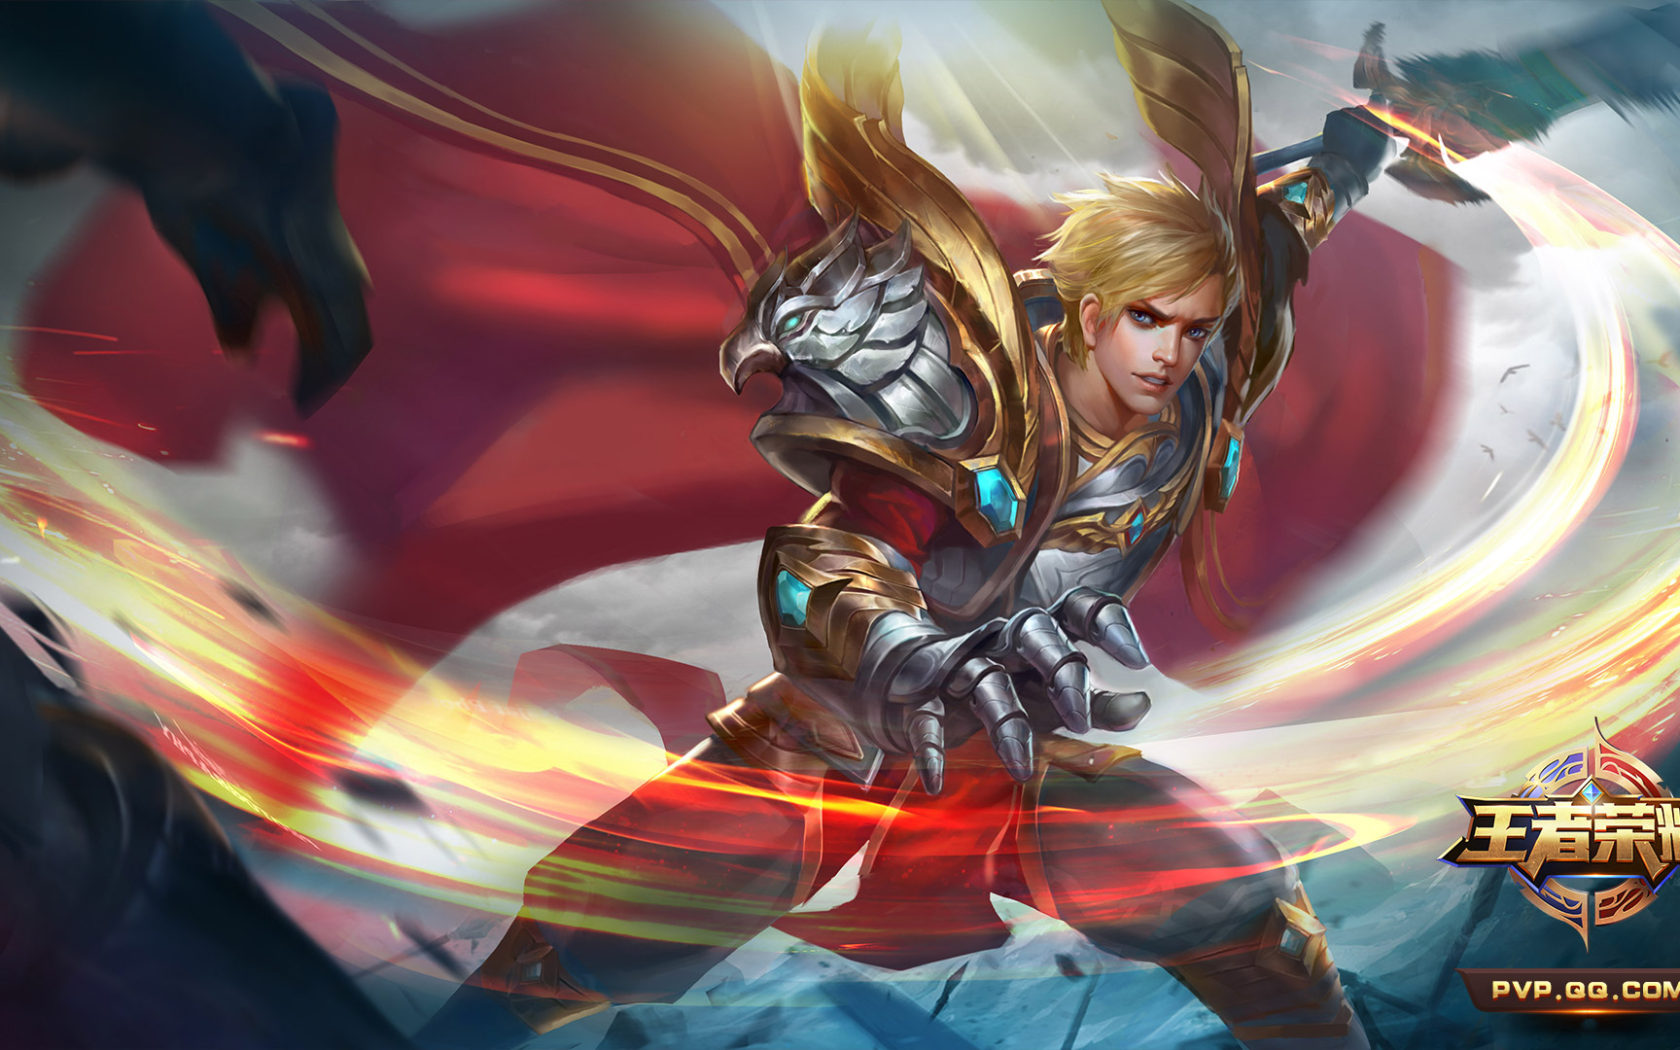 Girl Wallpaper For Iphone 5 Liu Bang Hero Character In The Video Game King Of Glory